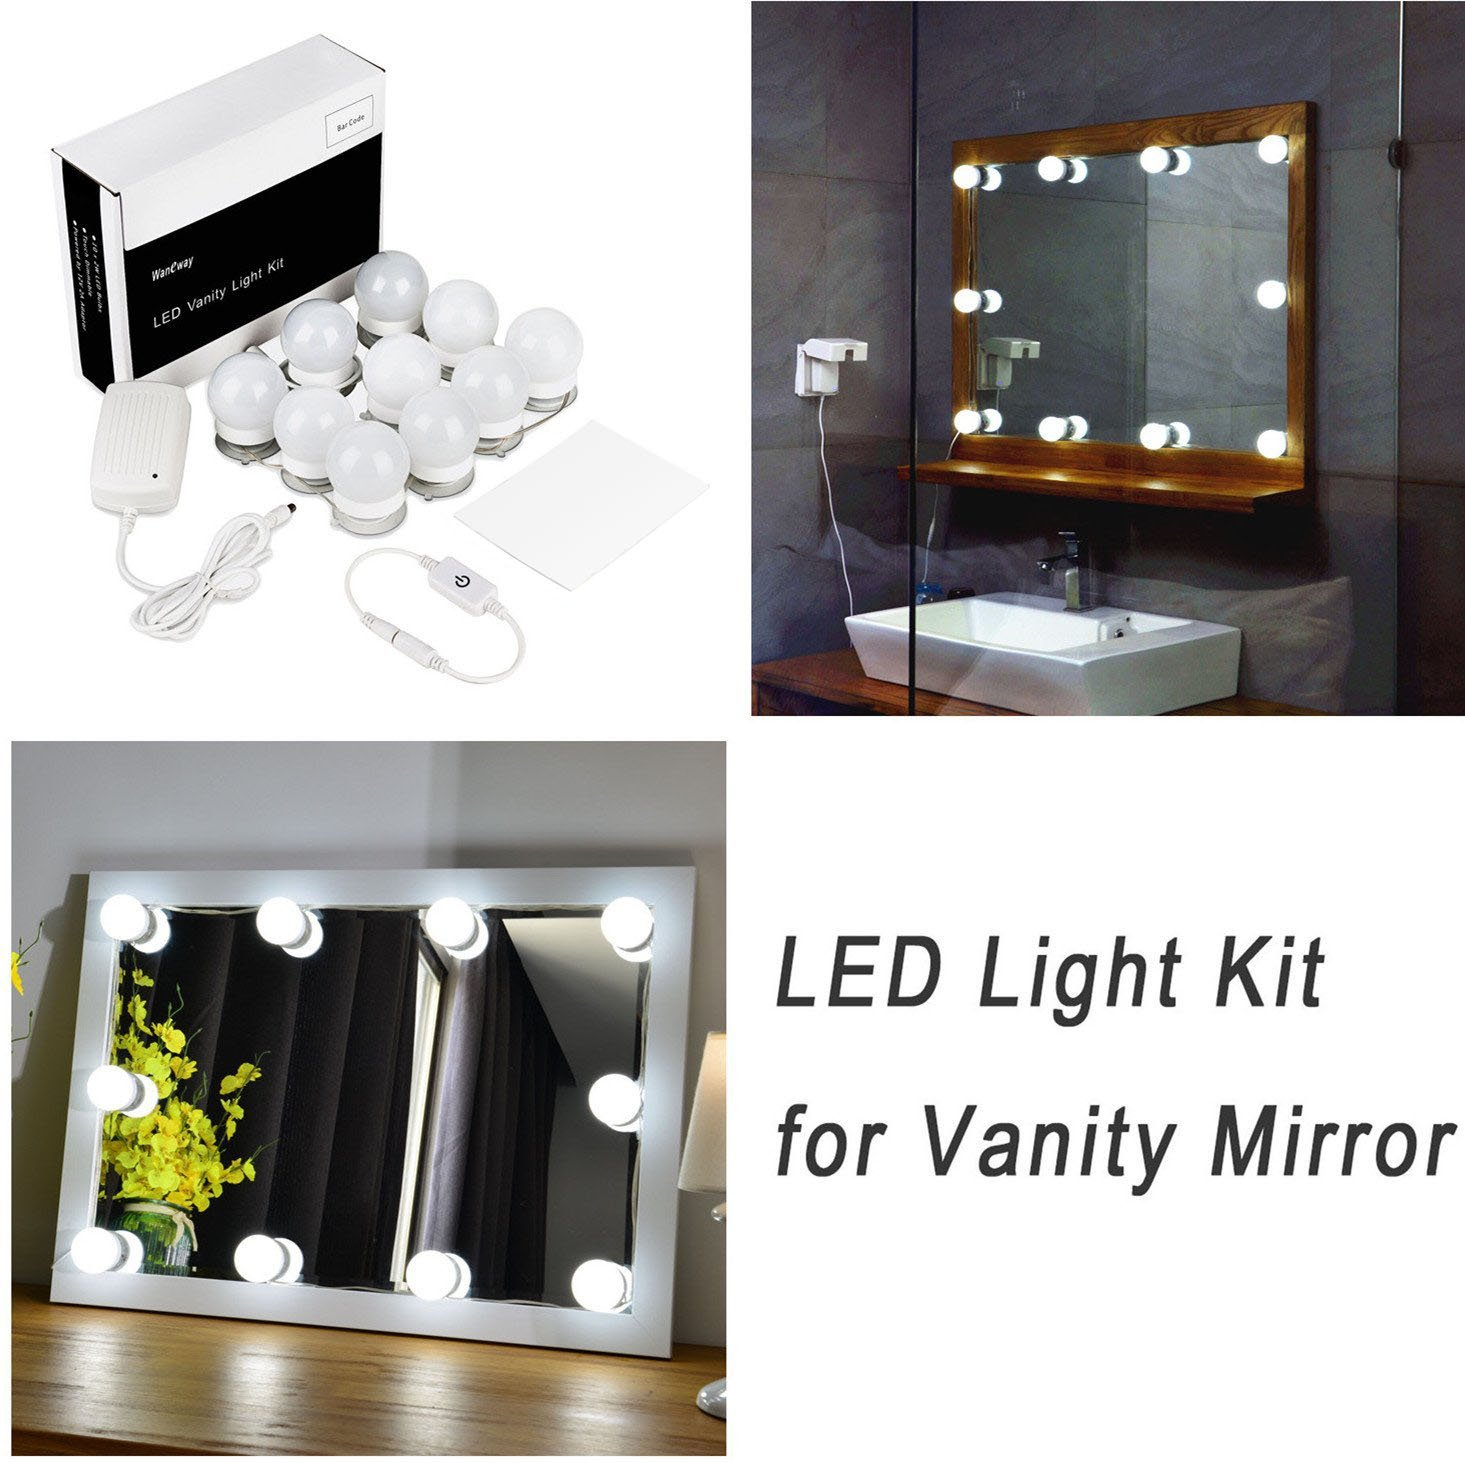 Hollywood Style LED Vanity Mirror Lights Kit for Makeup Dressing Table  Vanity Set Mirrors with Dimmer and Power Supply Plug in Lighting Fixture  Strip, ... - Hollywood Style LED Vanity Mirror Lights Kit For Makeup Dressing